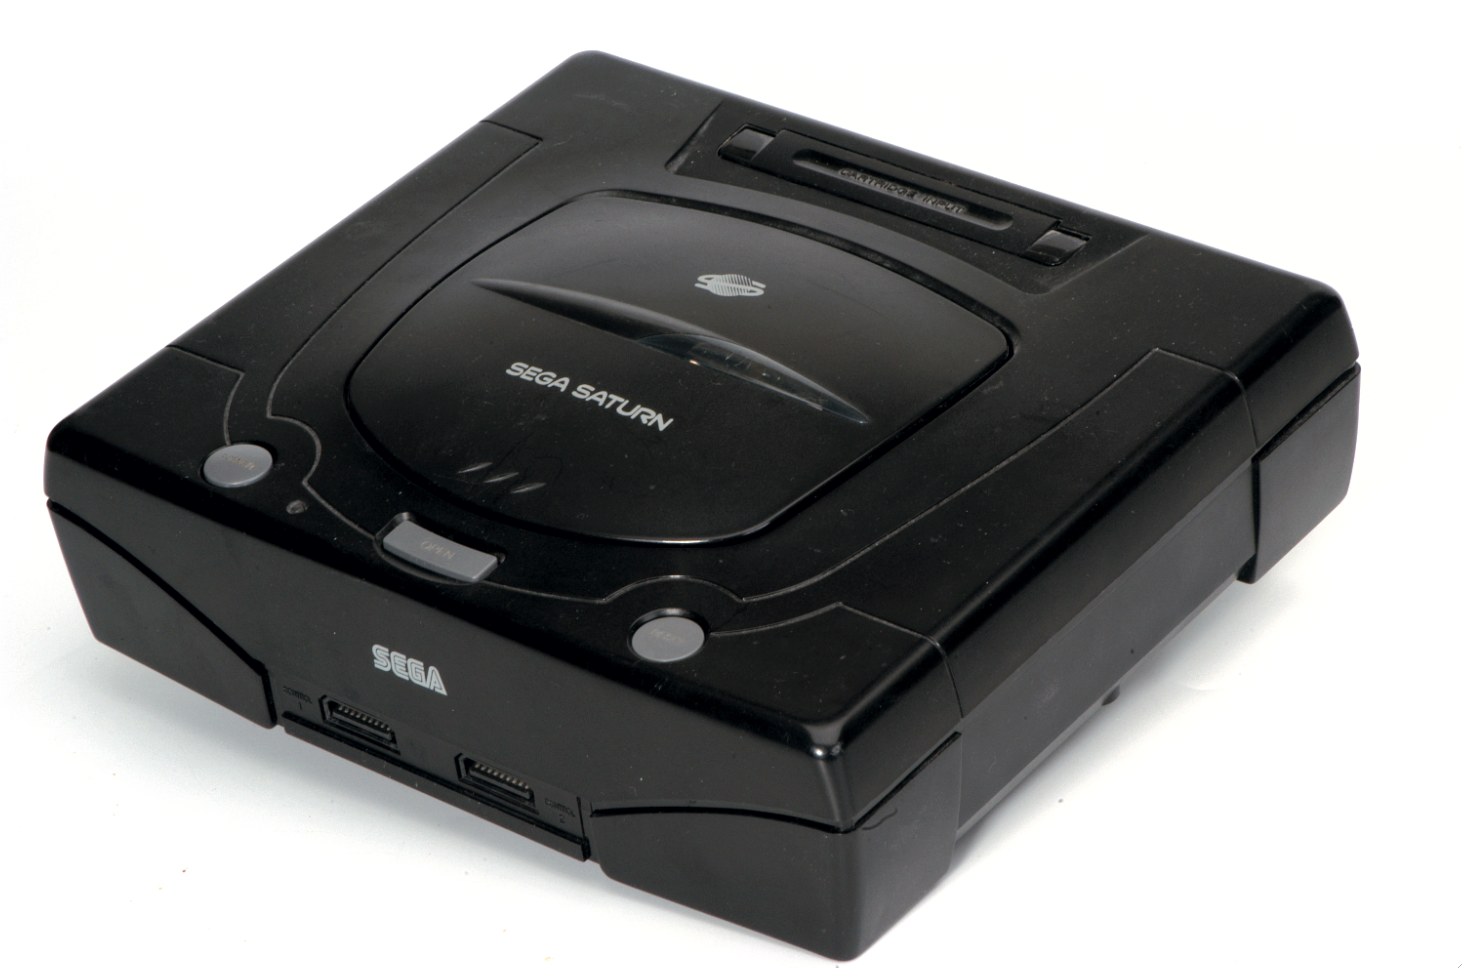 The Best and Worst Game Console Launches